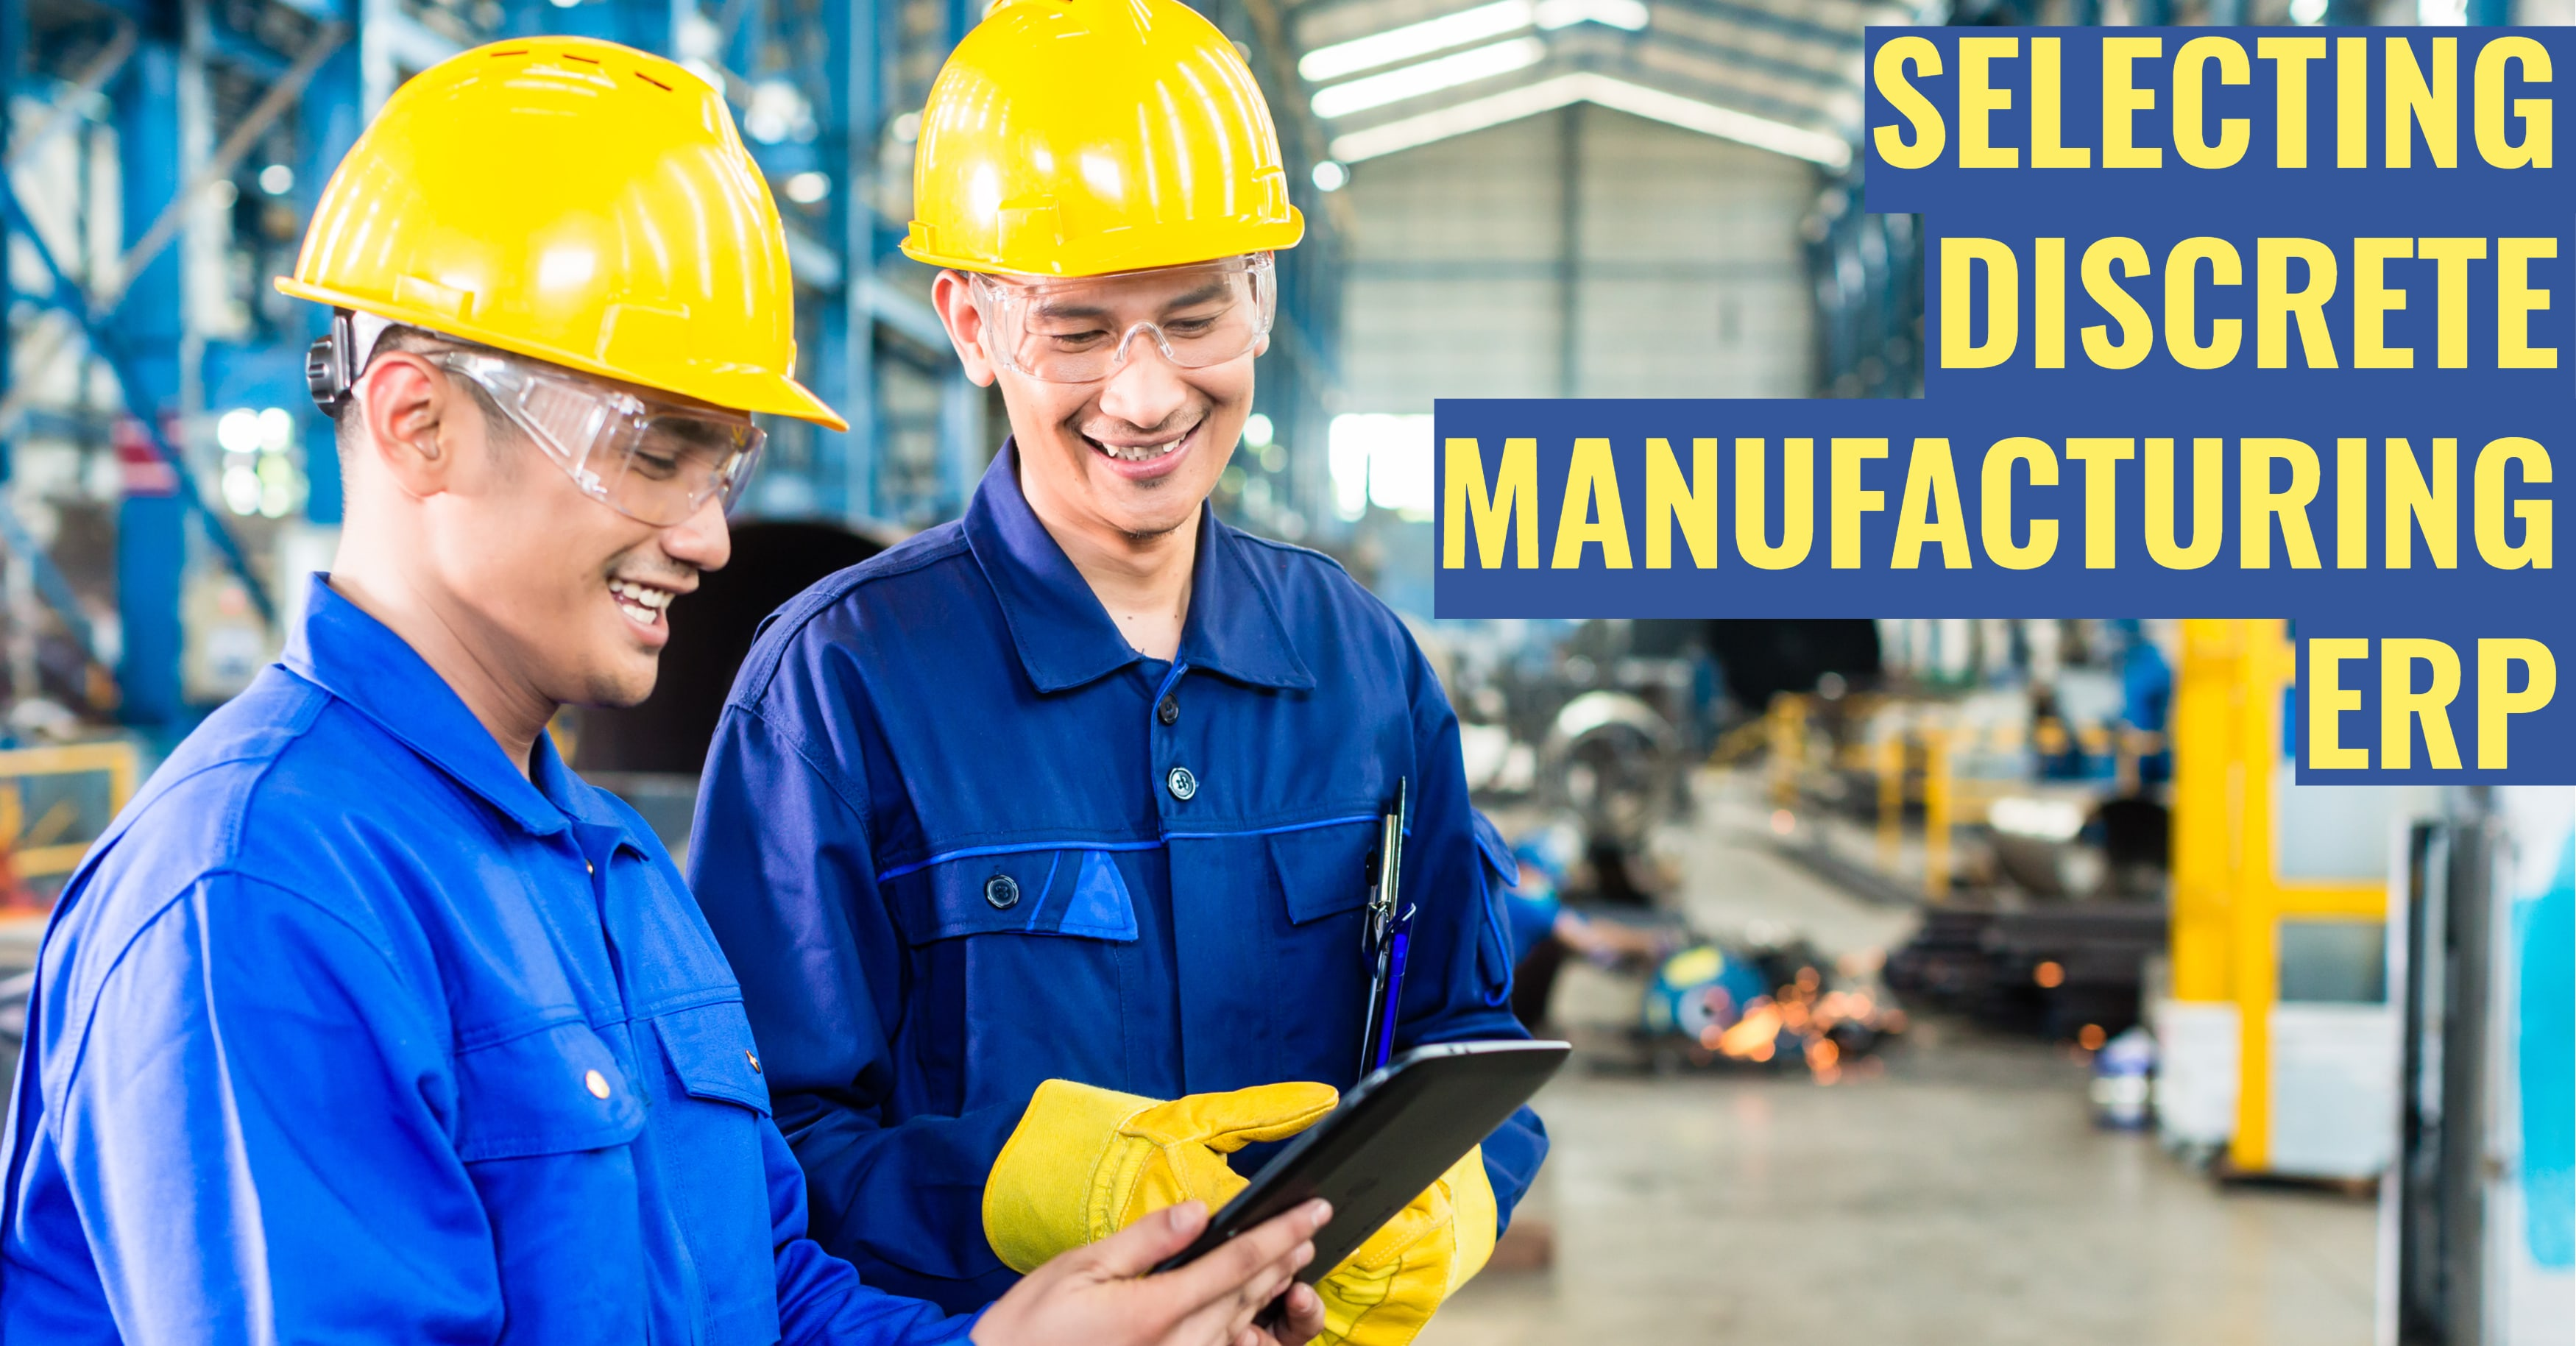 How to Find the Best ERP for Discrete Manufacturing